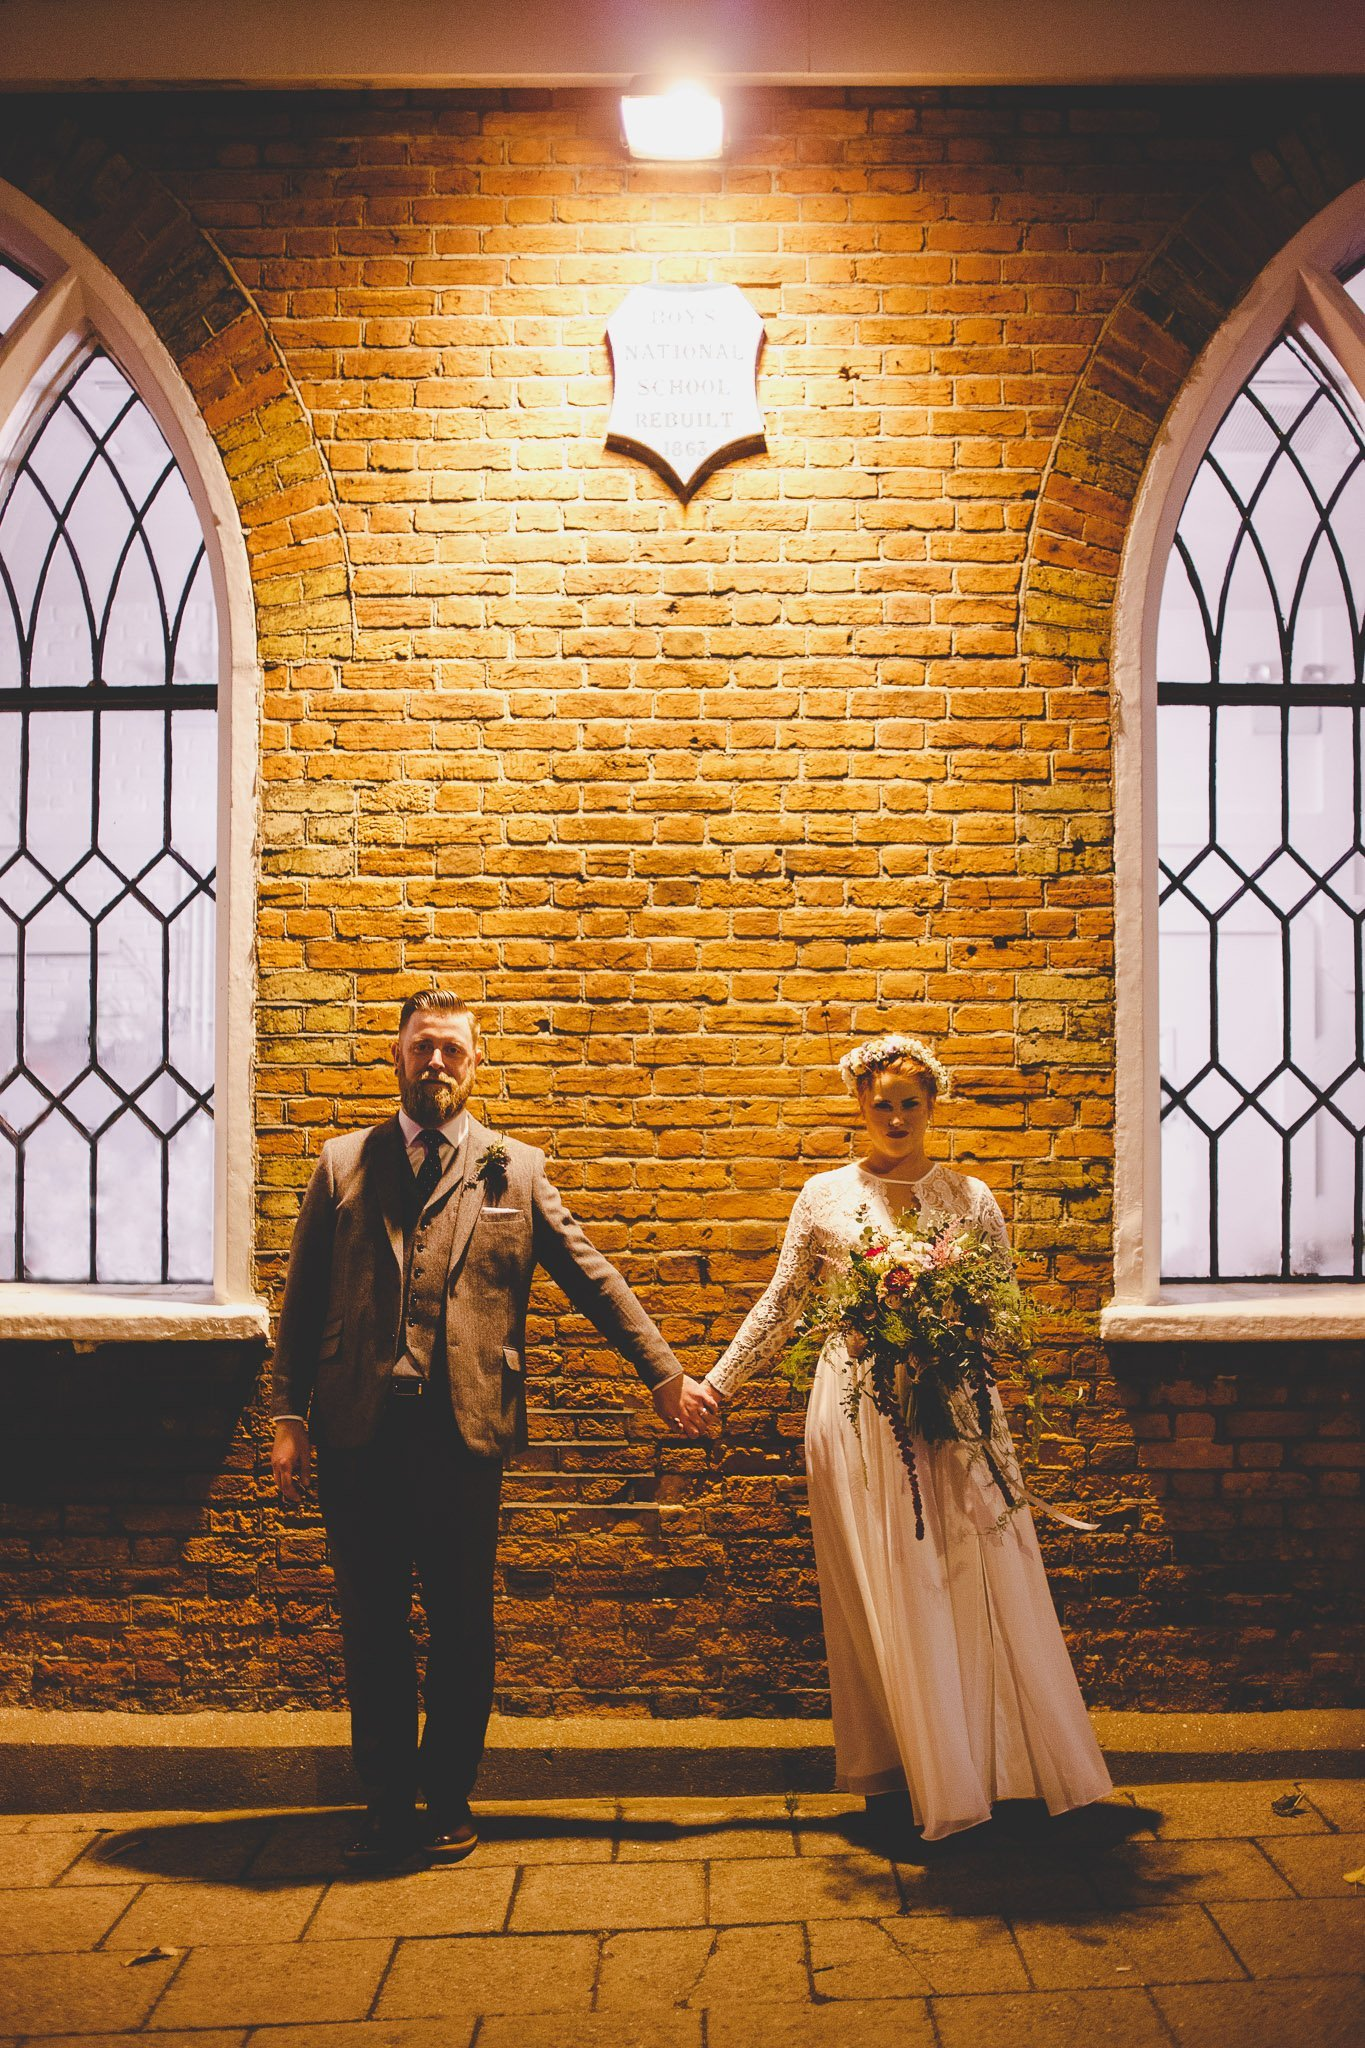 Vintage dressed bride and groom outside The Old Parish Rooms Essex at night under a spotlight. Photography by thatthingyoupluck.